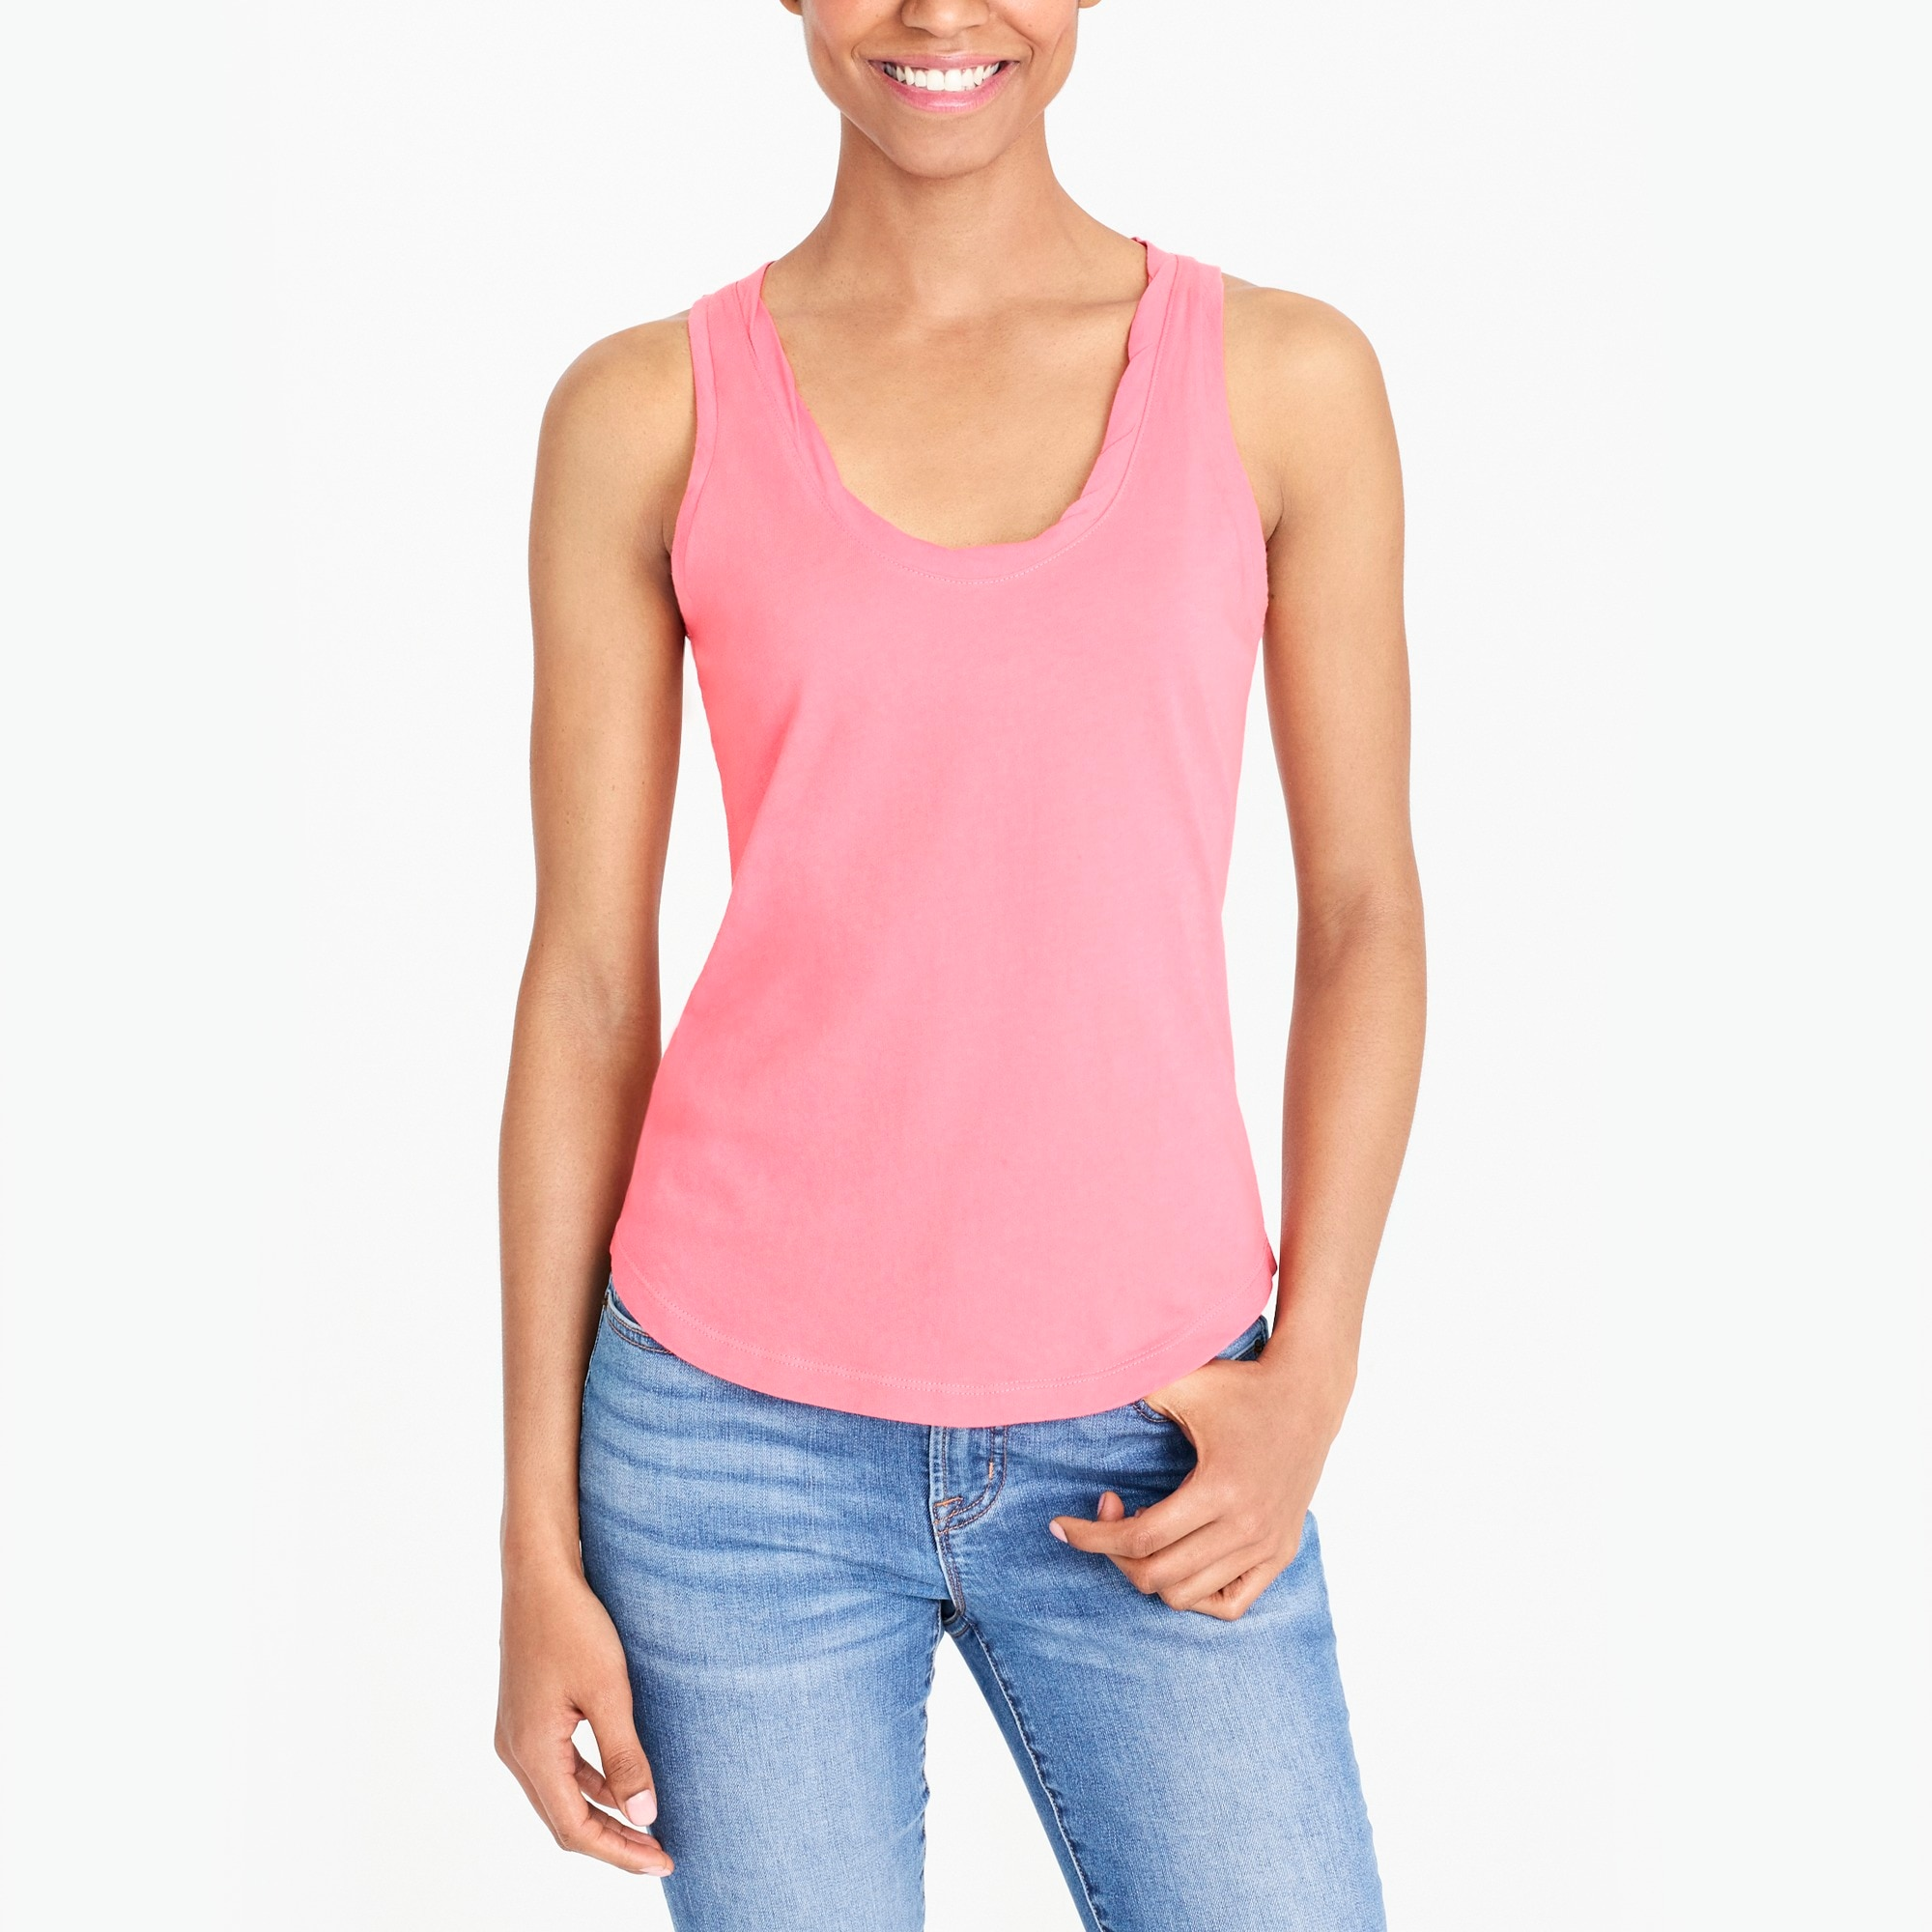 J.Crew Mercantile Tissue tank top factorywomen new arrivals c